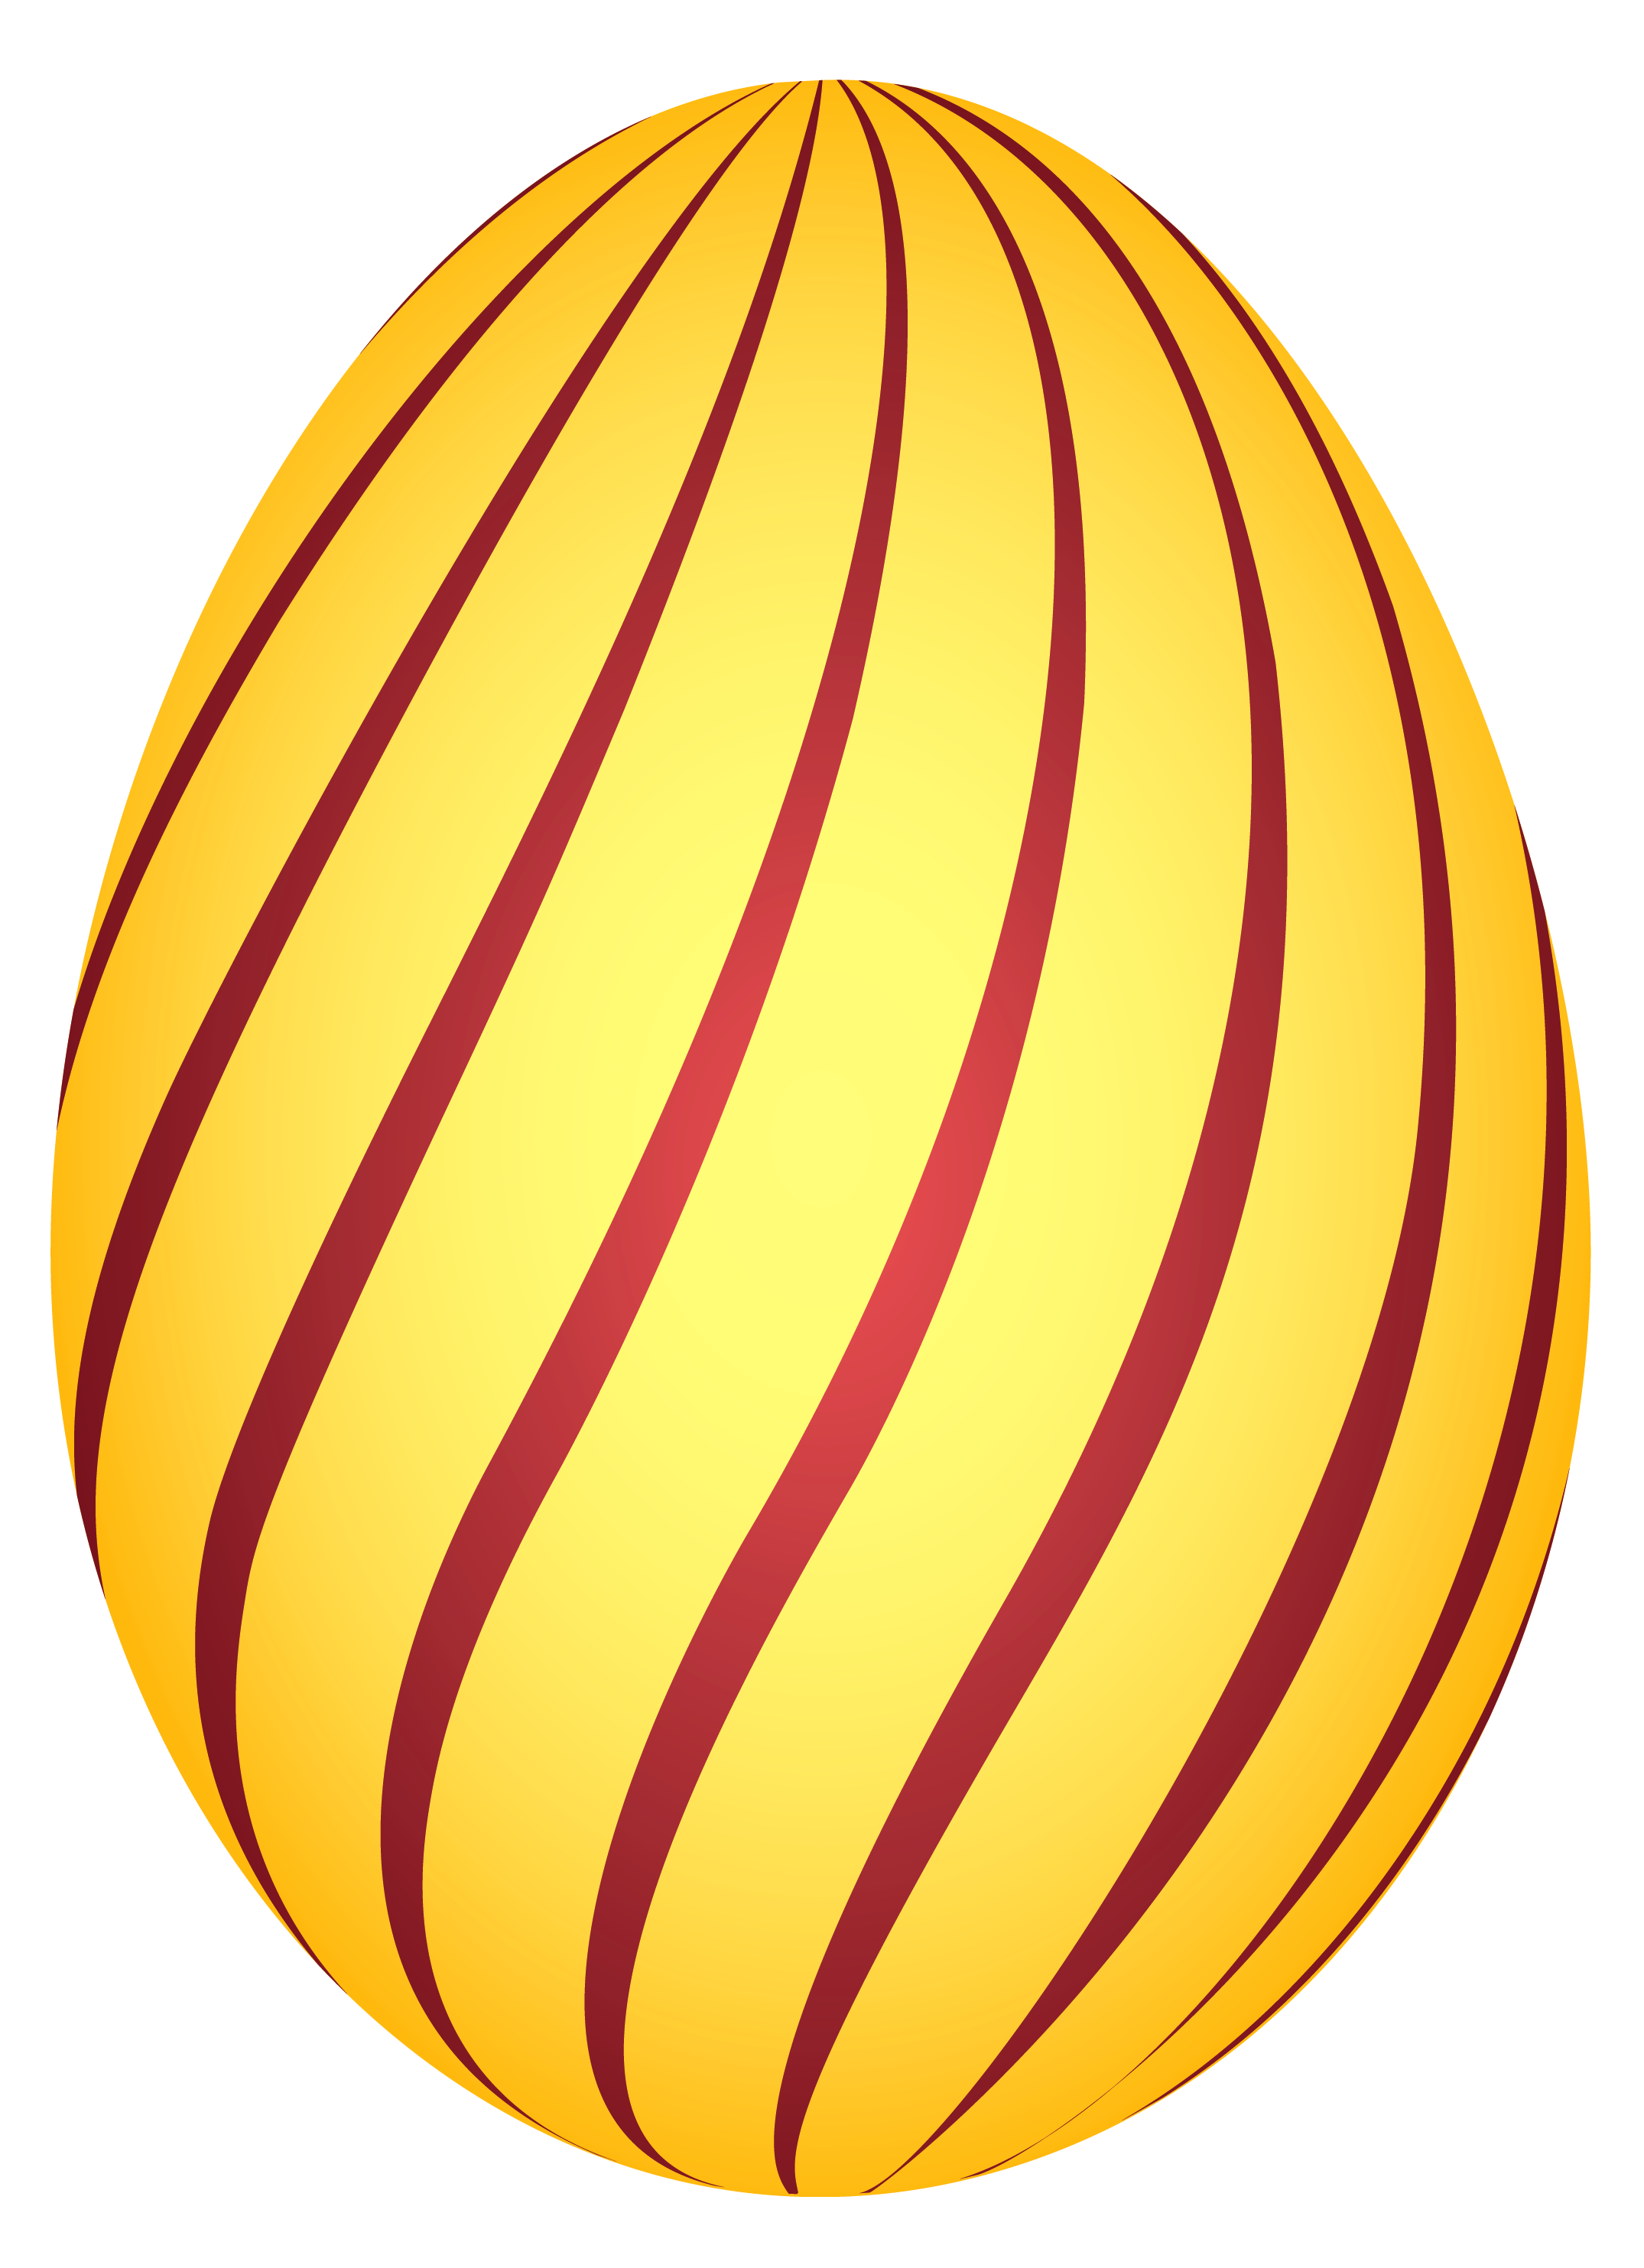 2150x2966 Yellow Striped Easter Egg Png Clipairt Pictureu200b Gallery